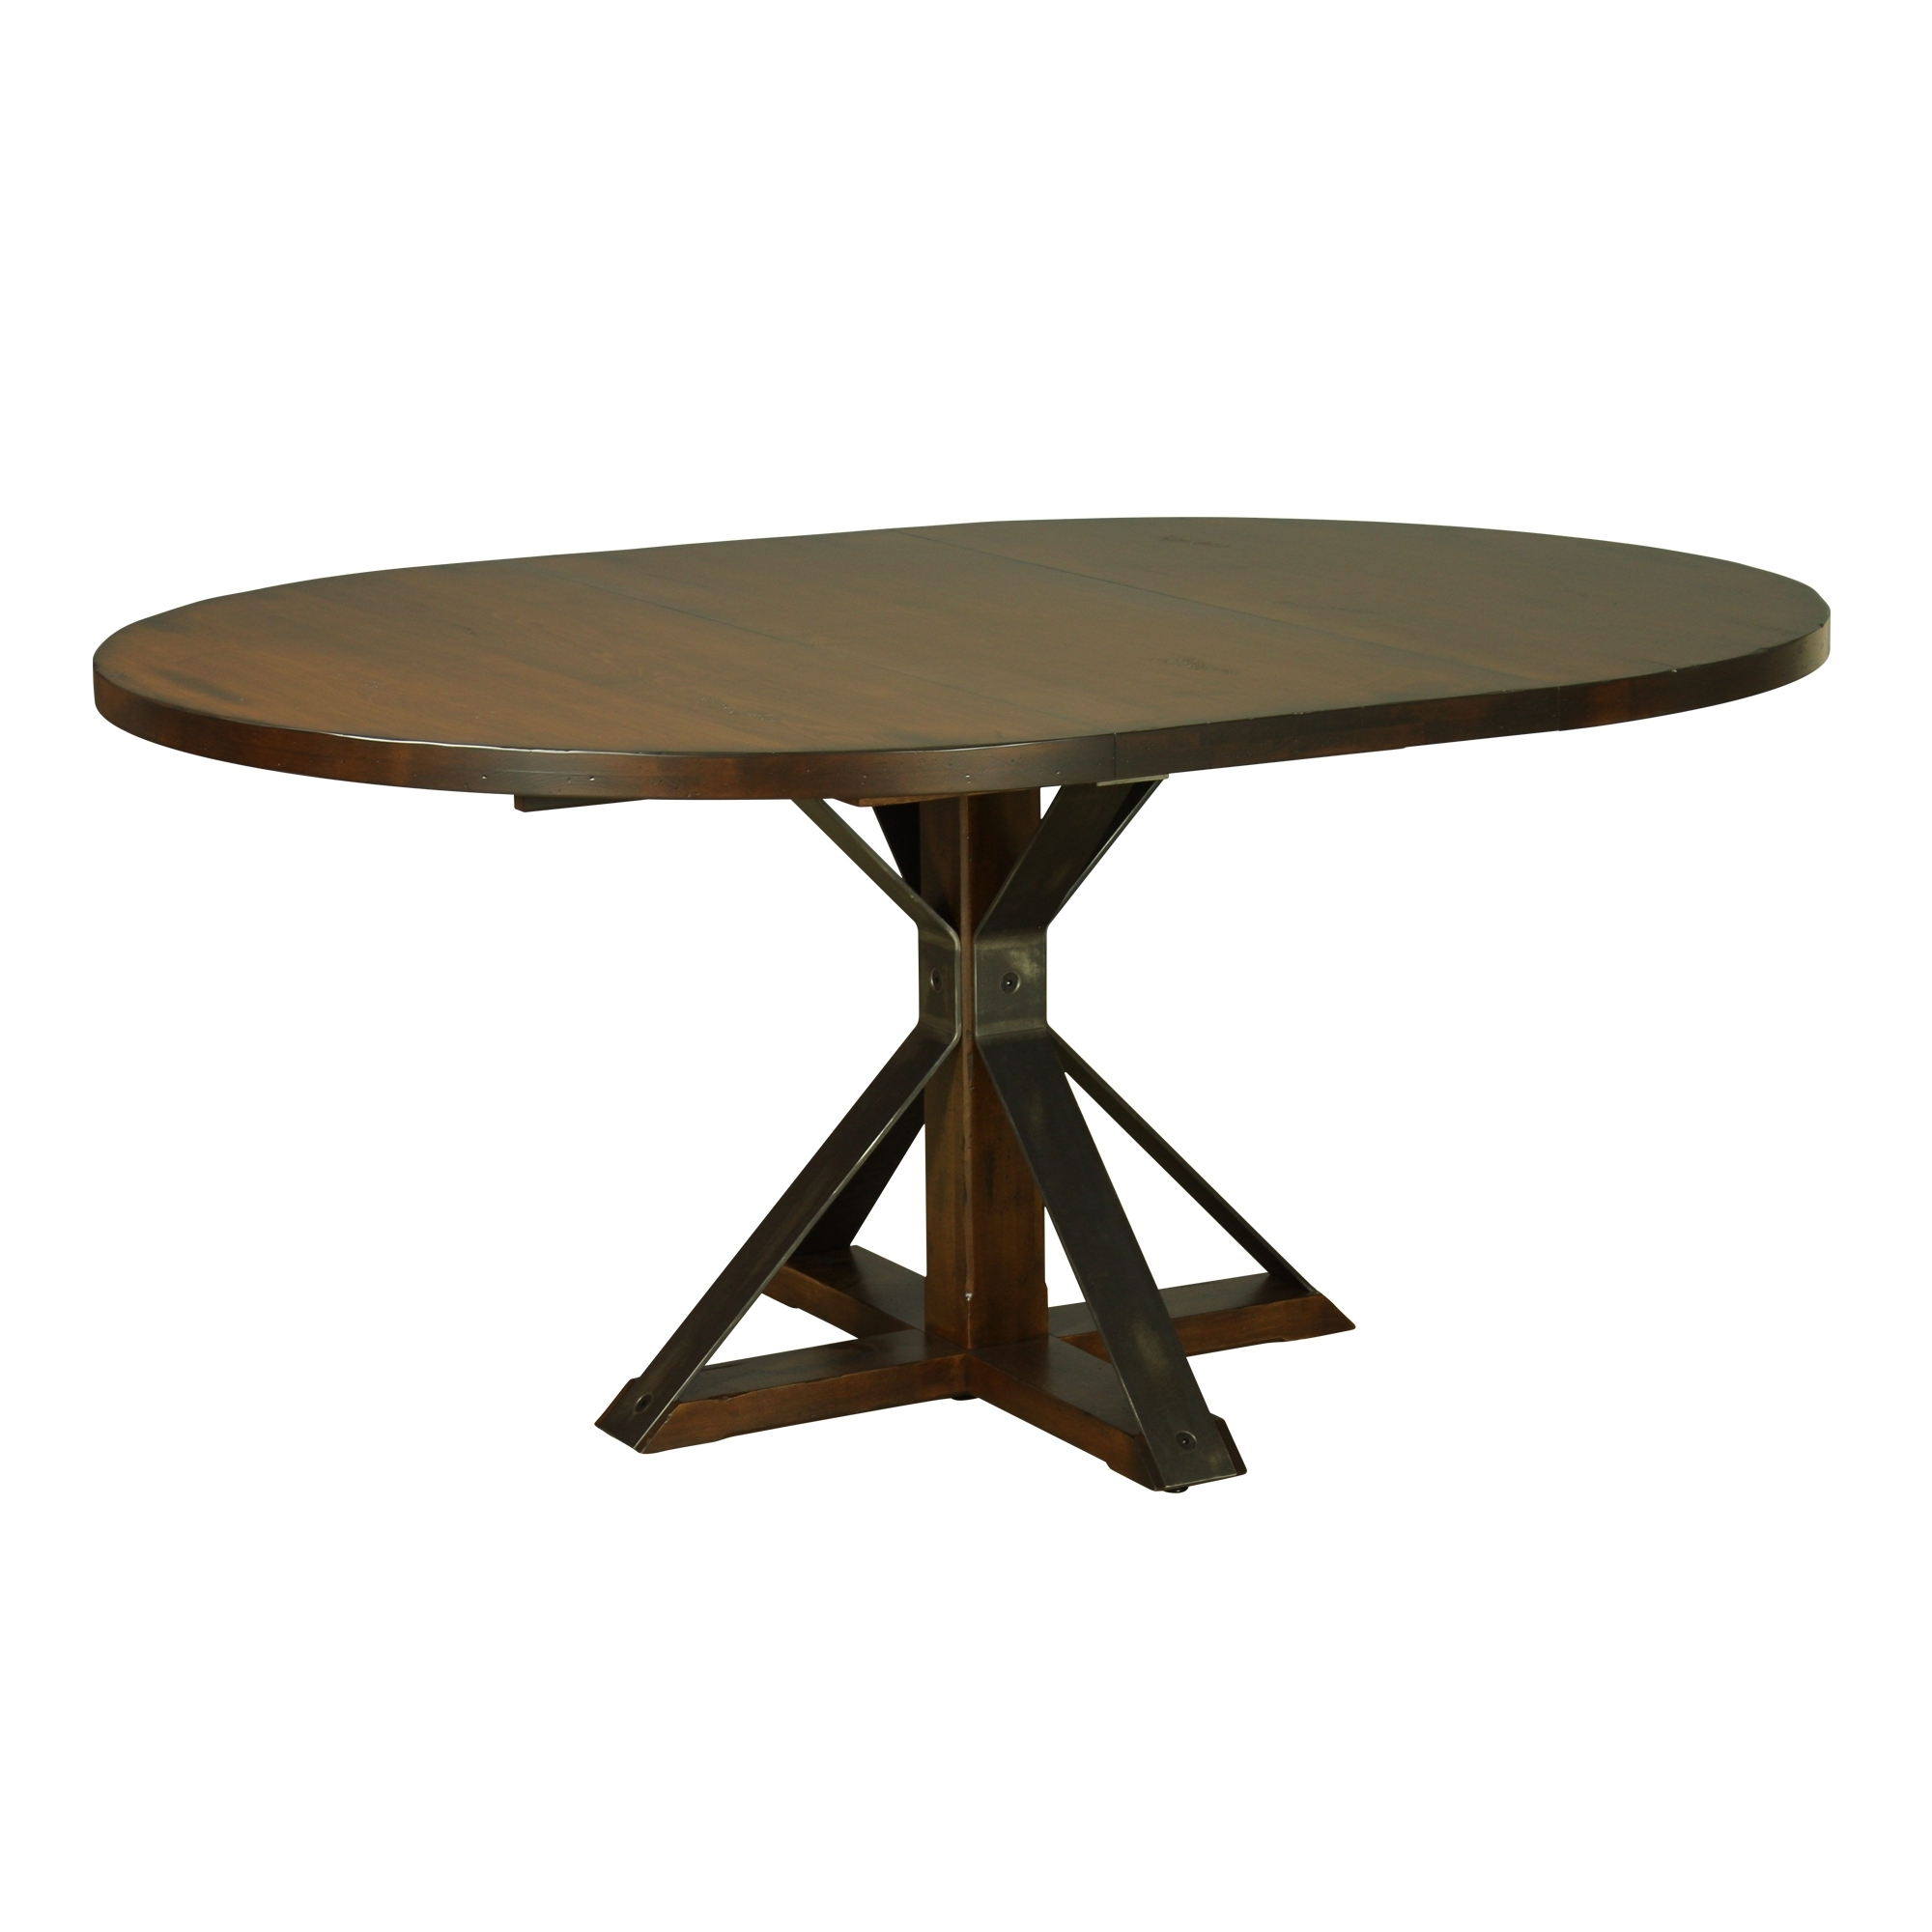 Cambridge Dining Tables For Famous Cambridge Dining Table – Saloom Furniture Company (View 9 of 25)